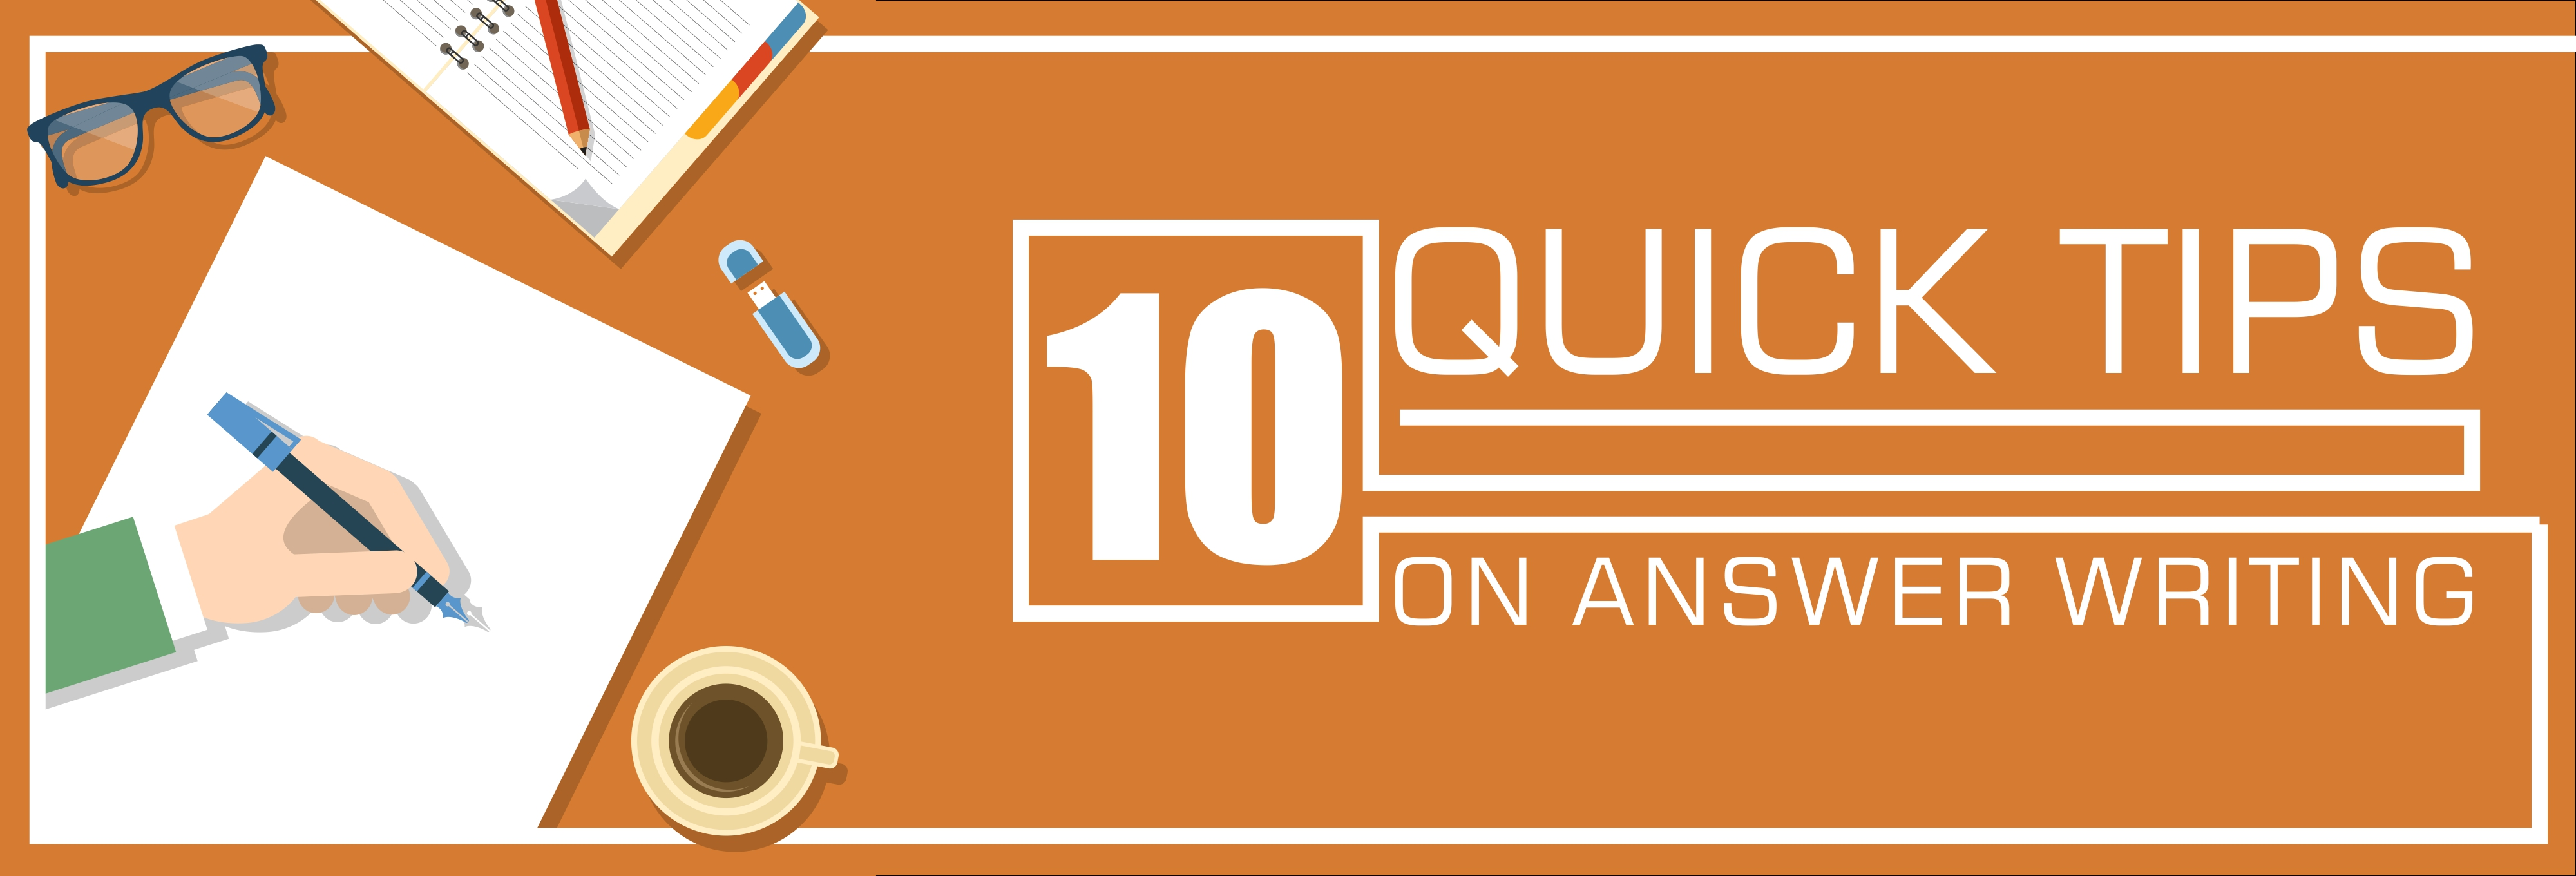 10  quick tips on answer writing